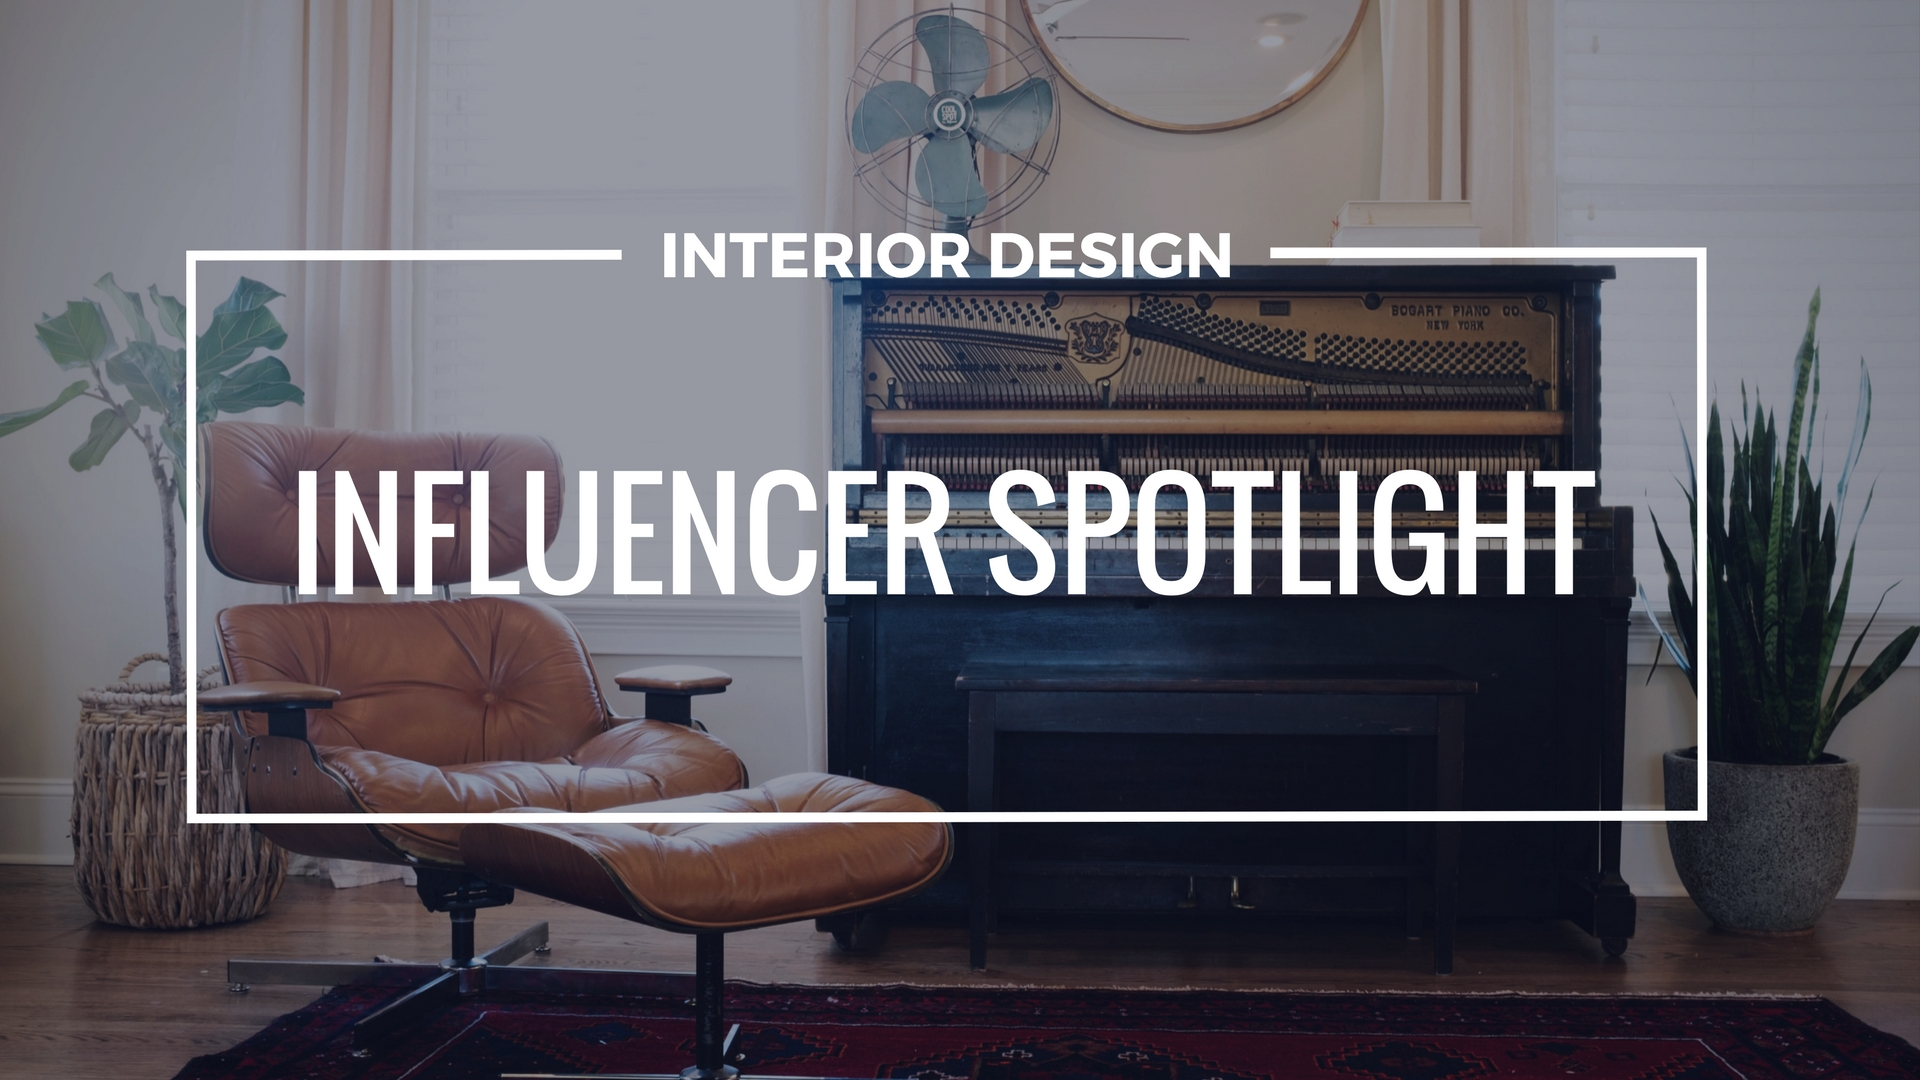 Influencer Spotlight! Interior Design Influencers